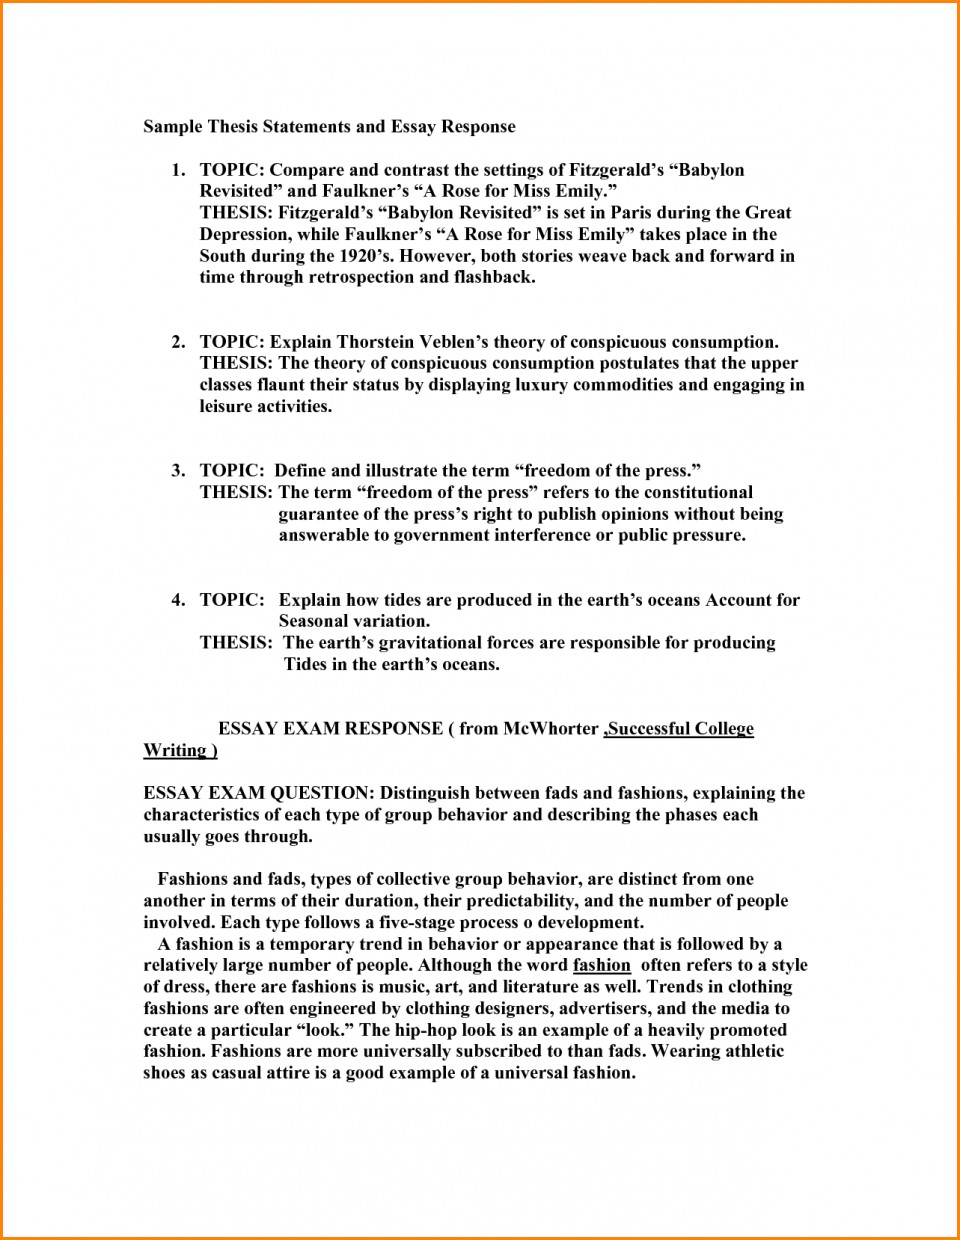 005 Poverty Research Paper Outline Thesis Statement Examples For Essays Amazing In America 960